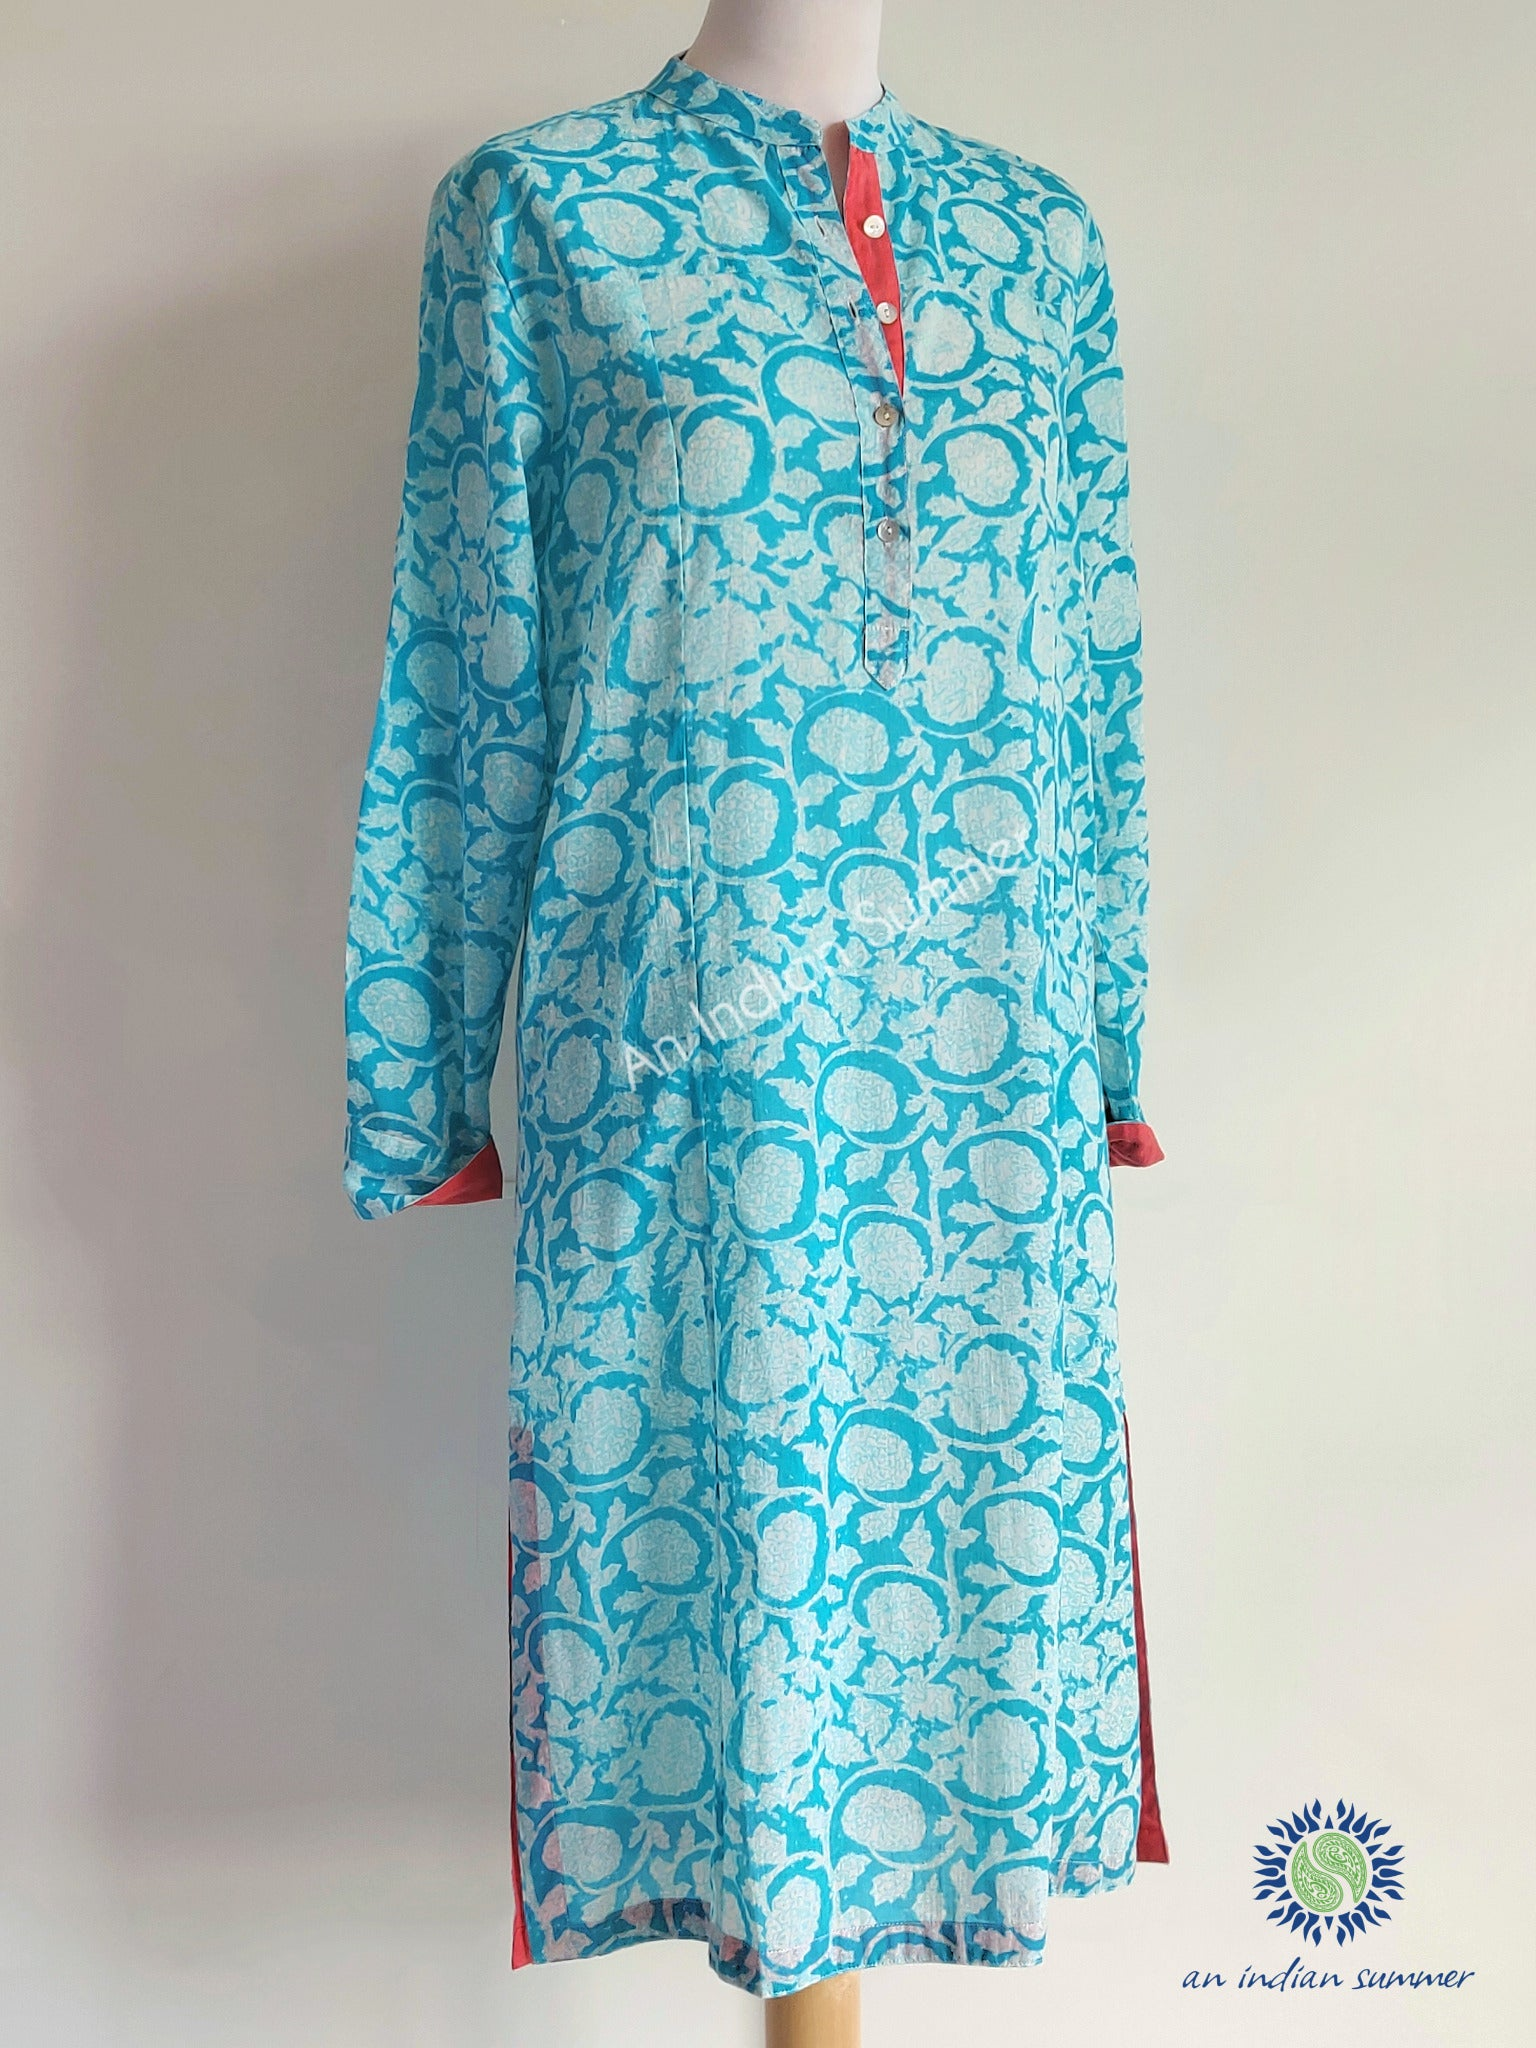 Tunic Dress Blossom Turquoise with Coral Contrast Detail | Hand Block Printed | Cotton Voile | An Indian Summer | Seasonless Timeless Sustainable Ethical Authentic Artisan Conscious Clothing Lifestyle Brand